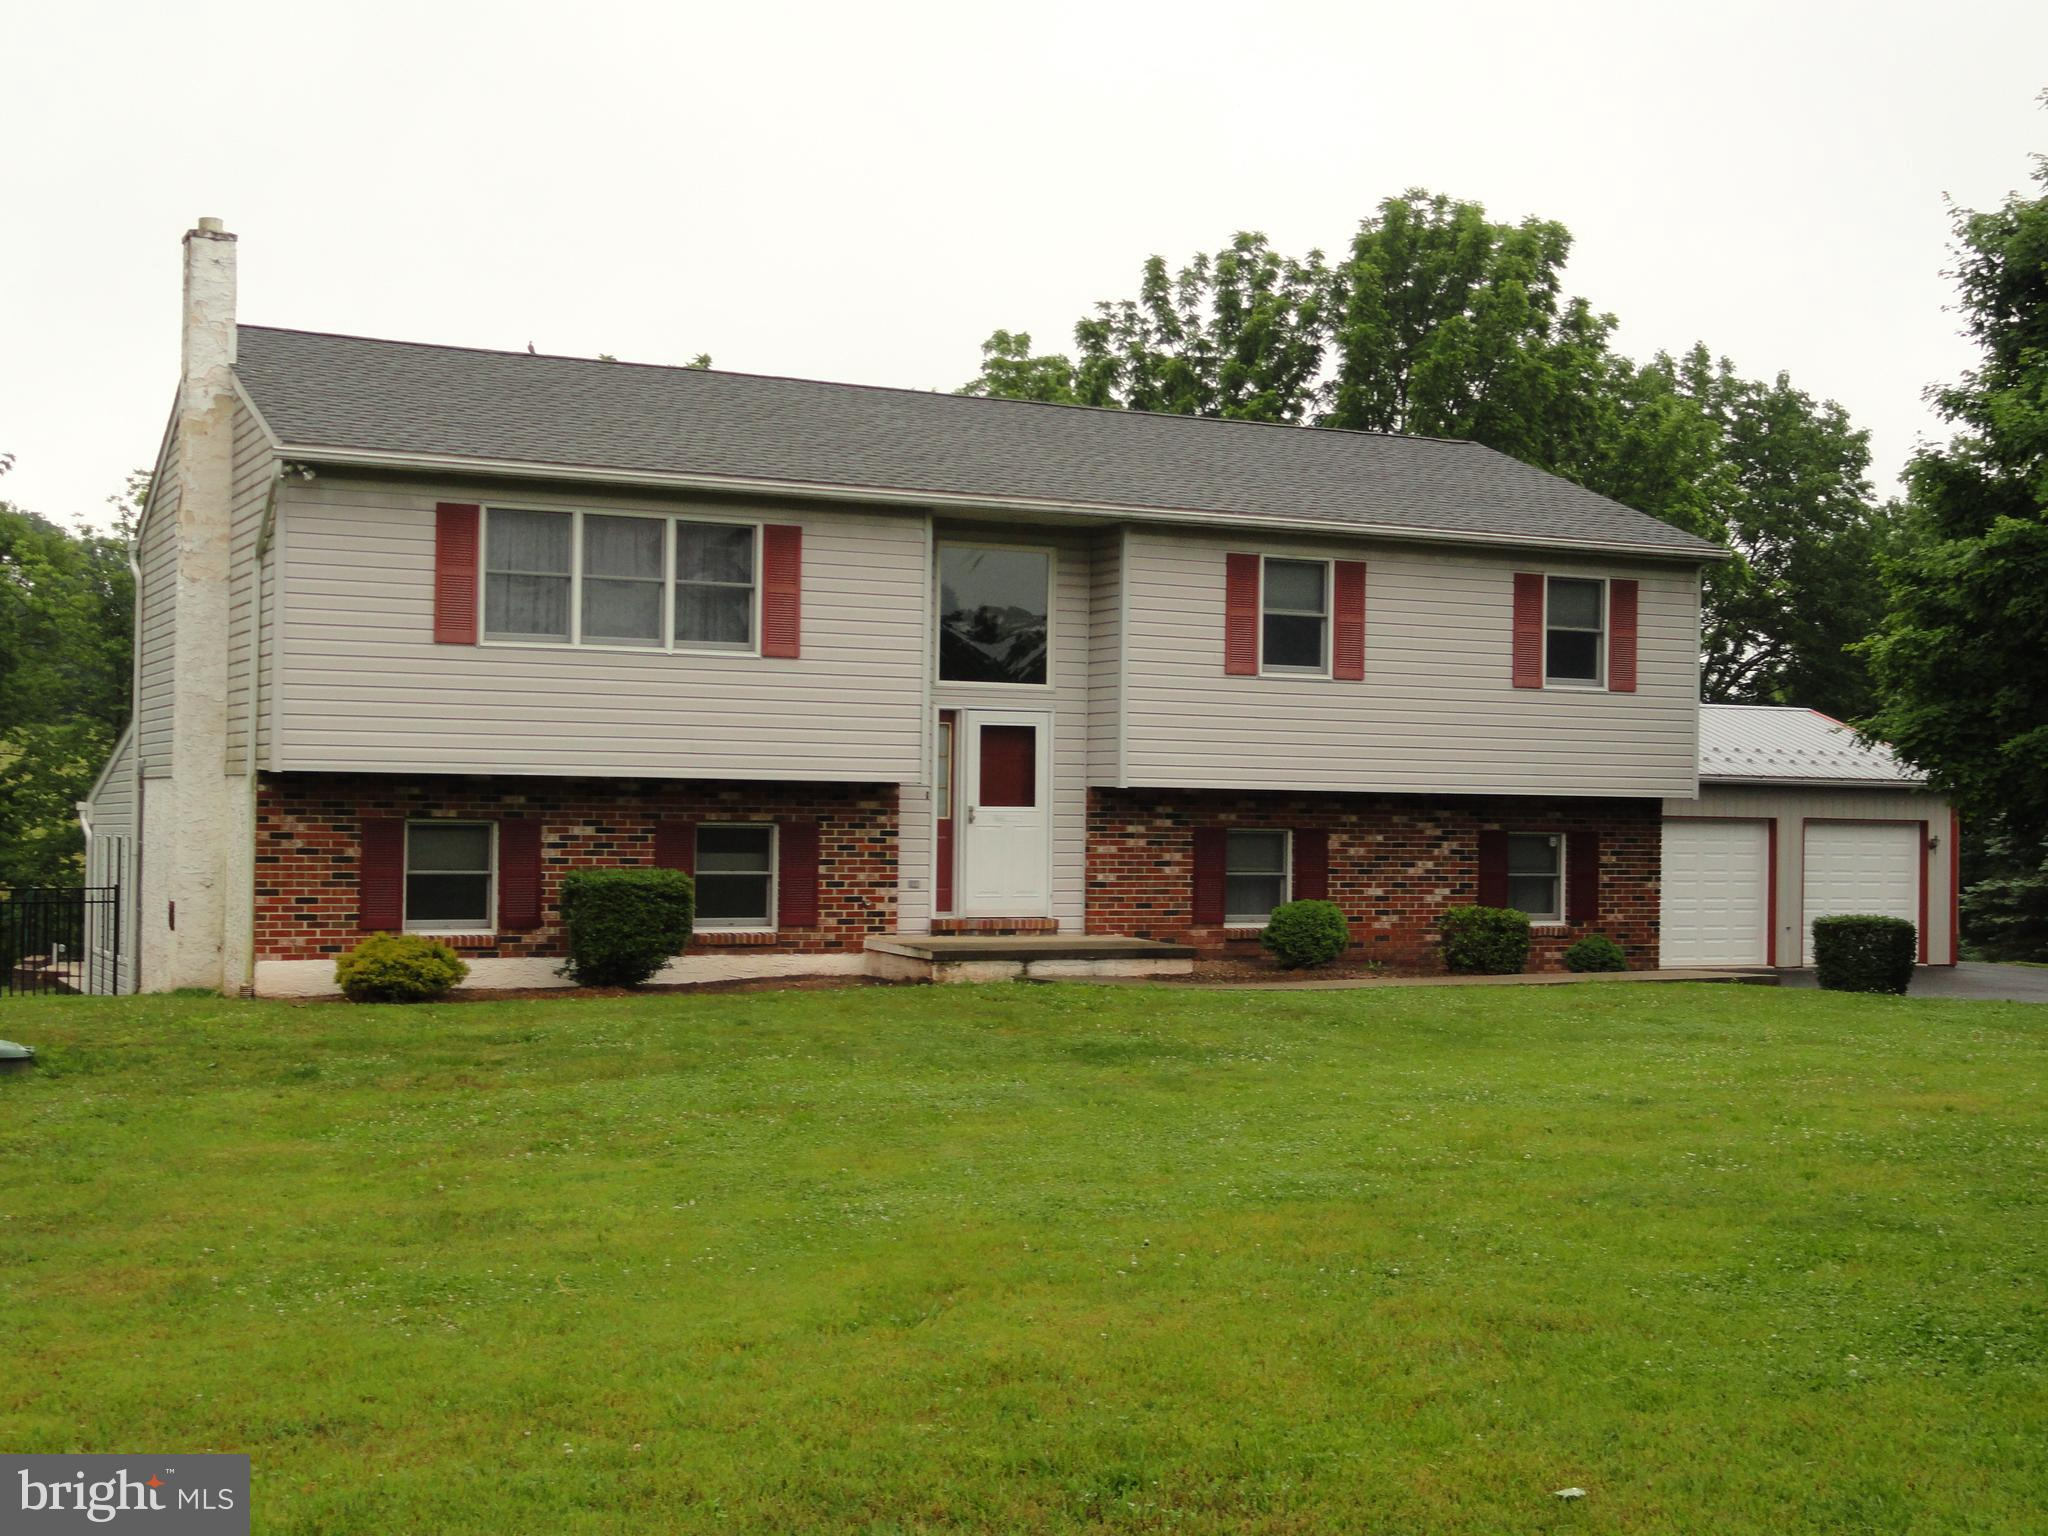 1248 E 6TH STREET, RED HILL, PA 18076